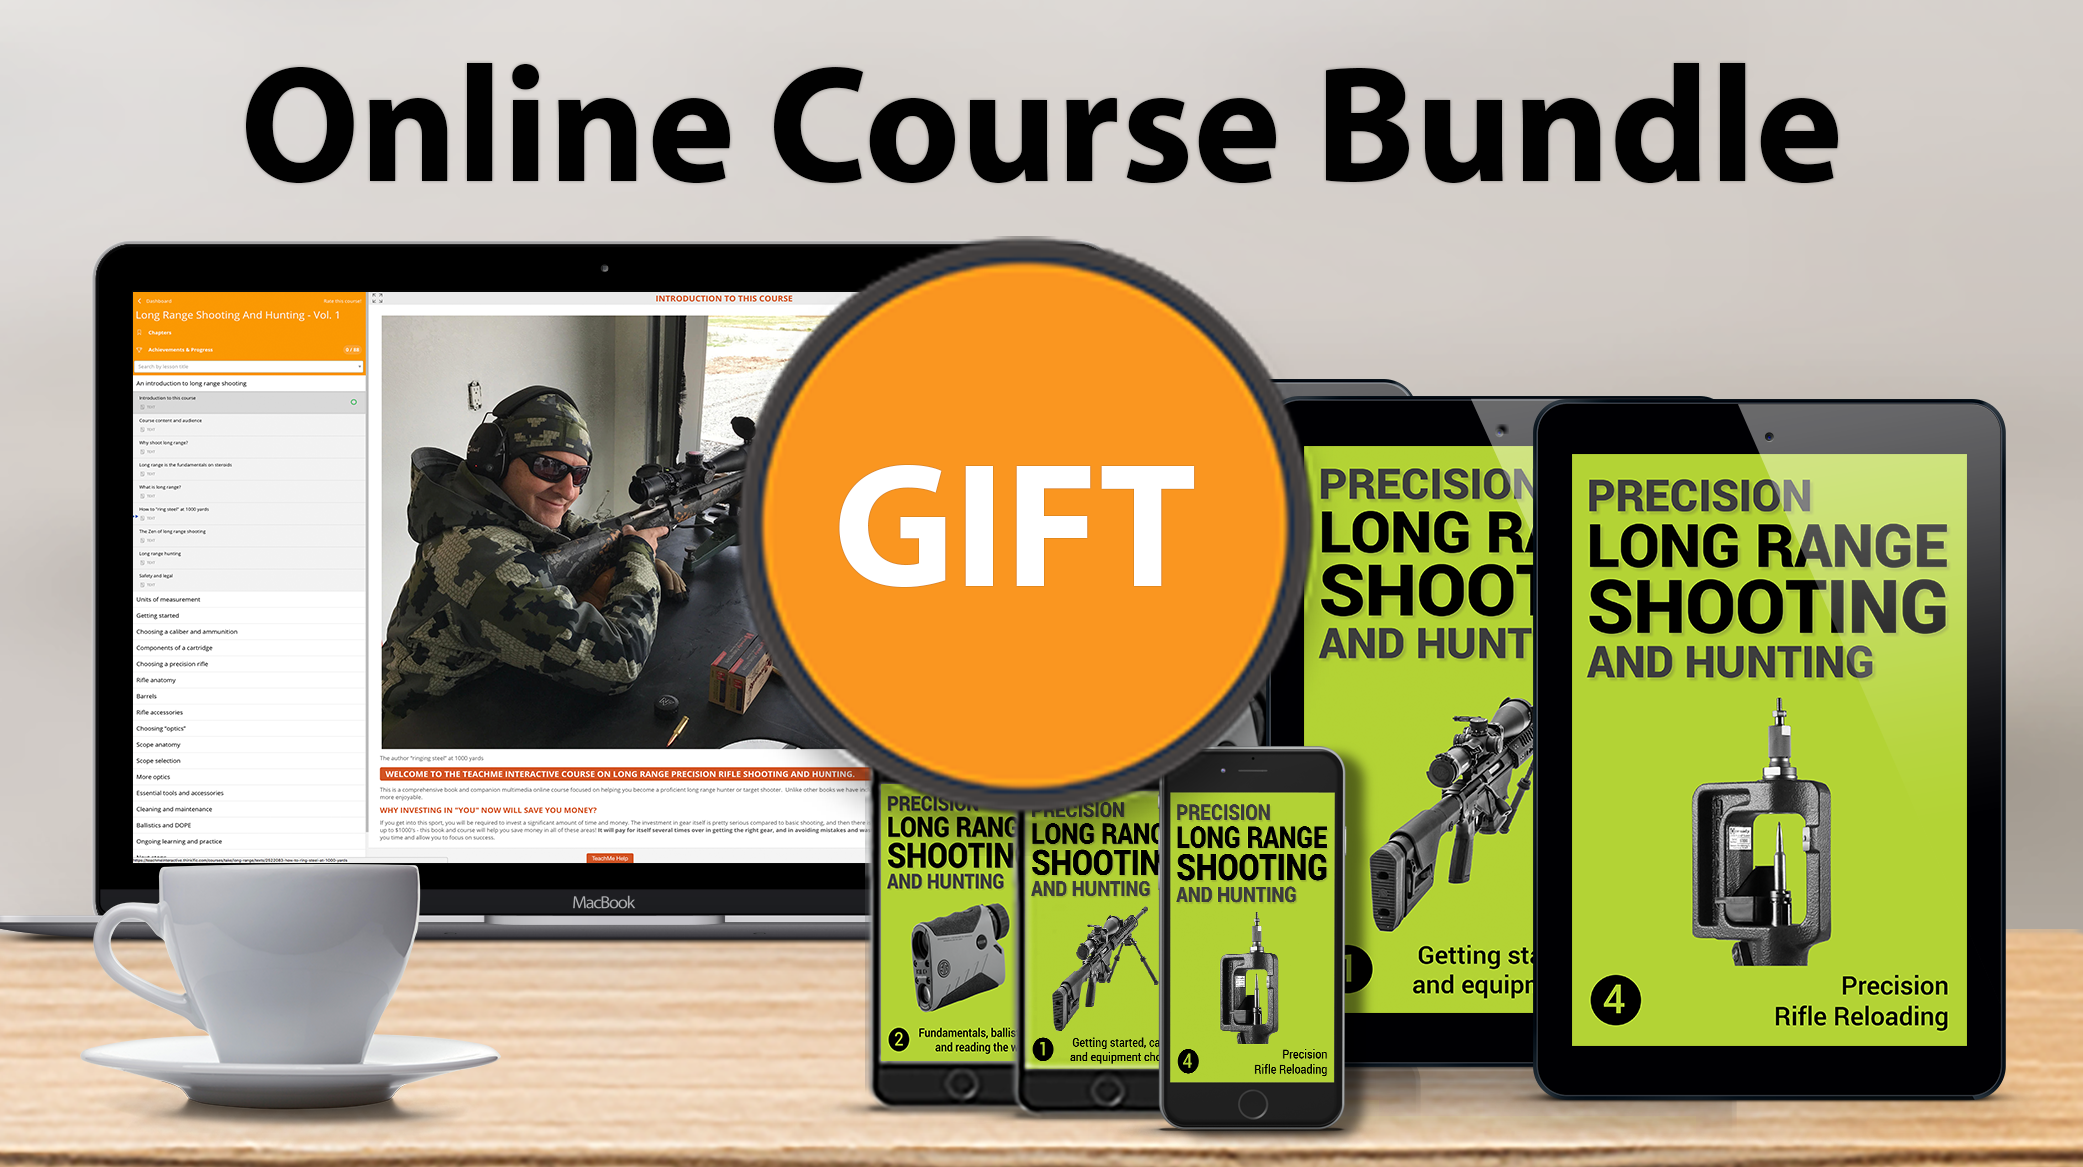 #1 ULTIMATE ONLINE COURSE BUNDLE GIFT - LONG RANGE SHOOTING